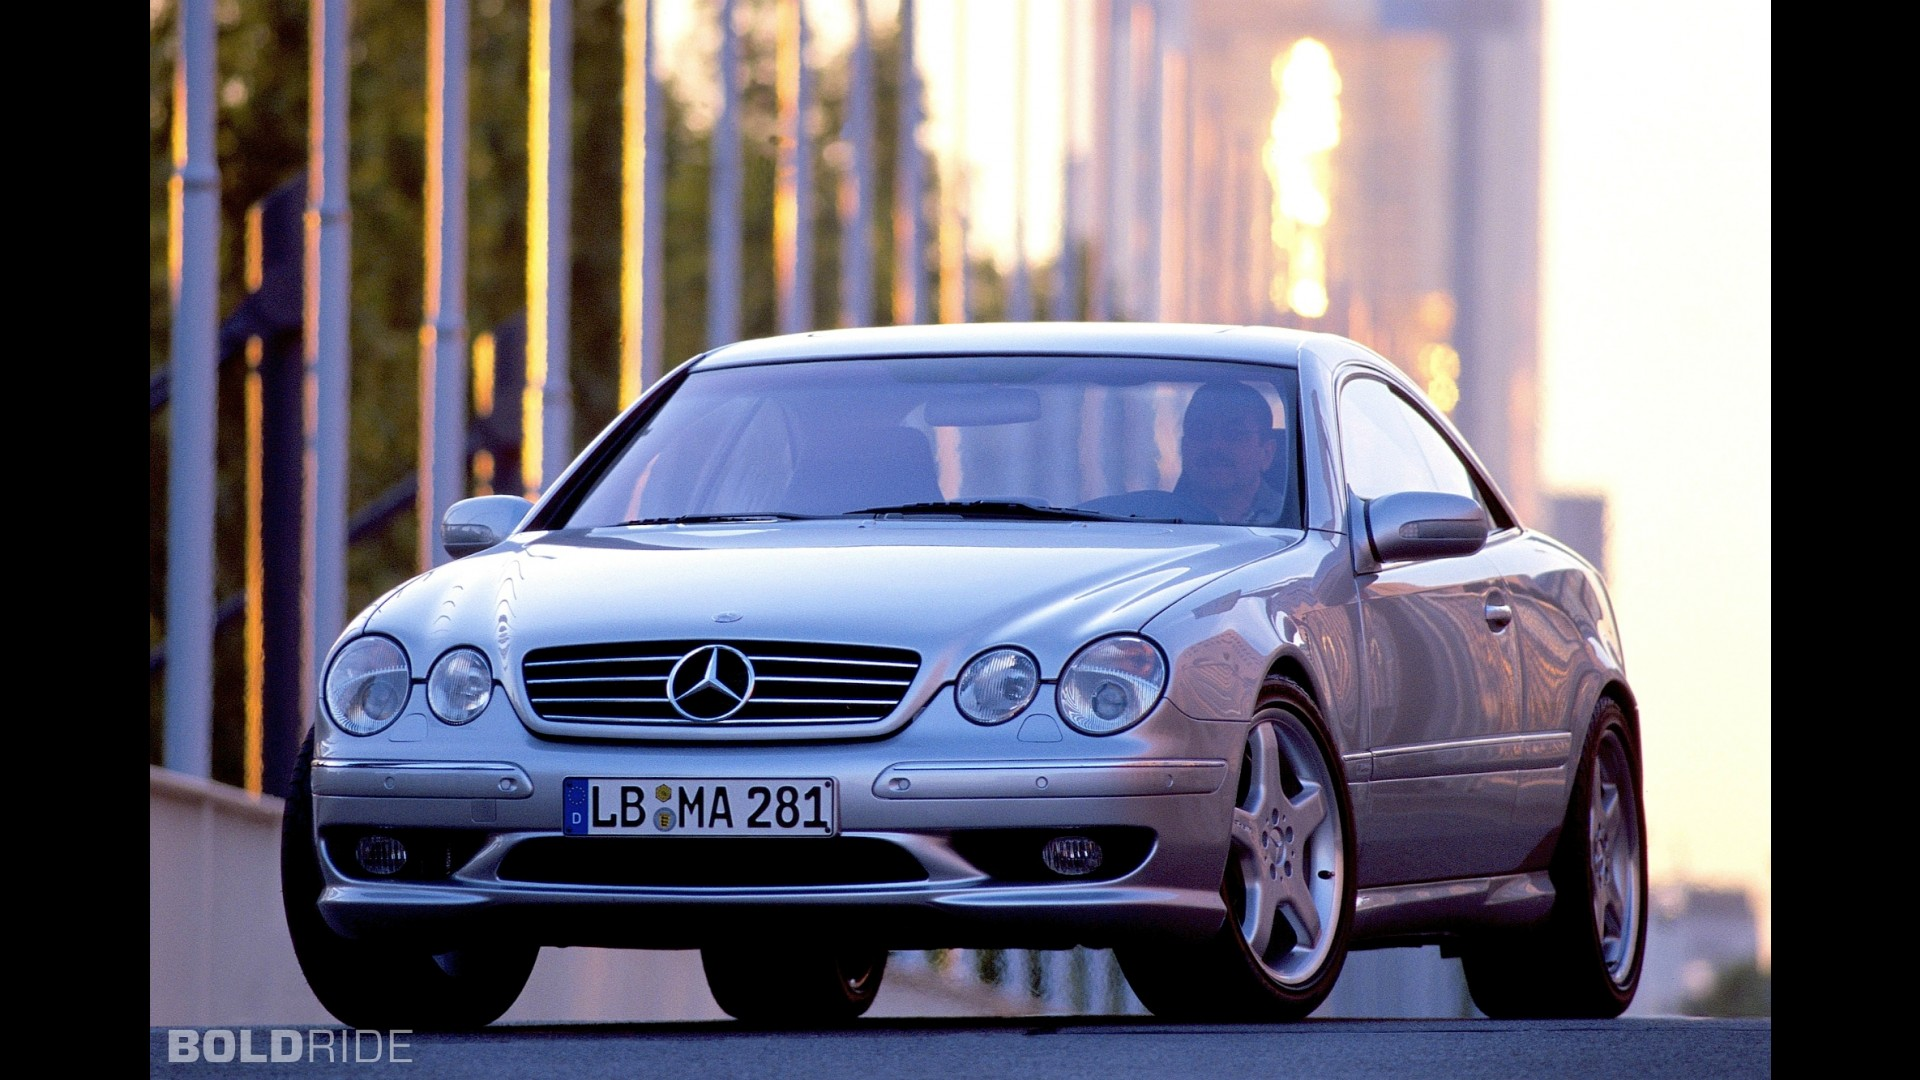 Mercedes Benz Cl55 Amg F1 Limited Edition